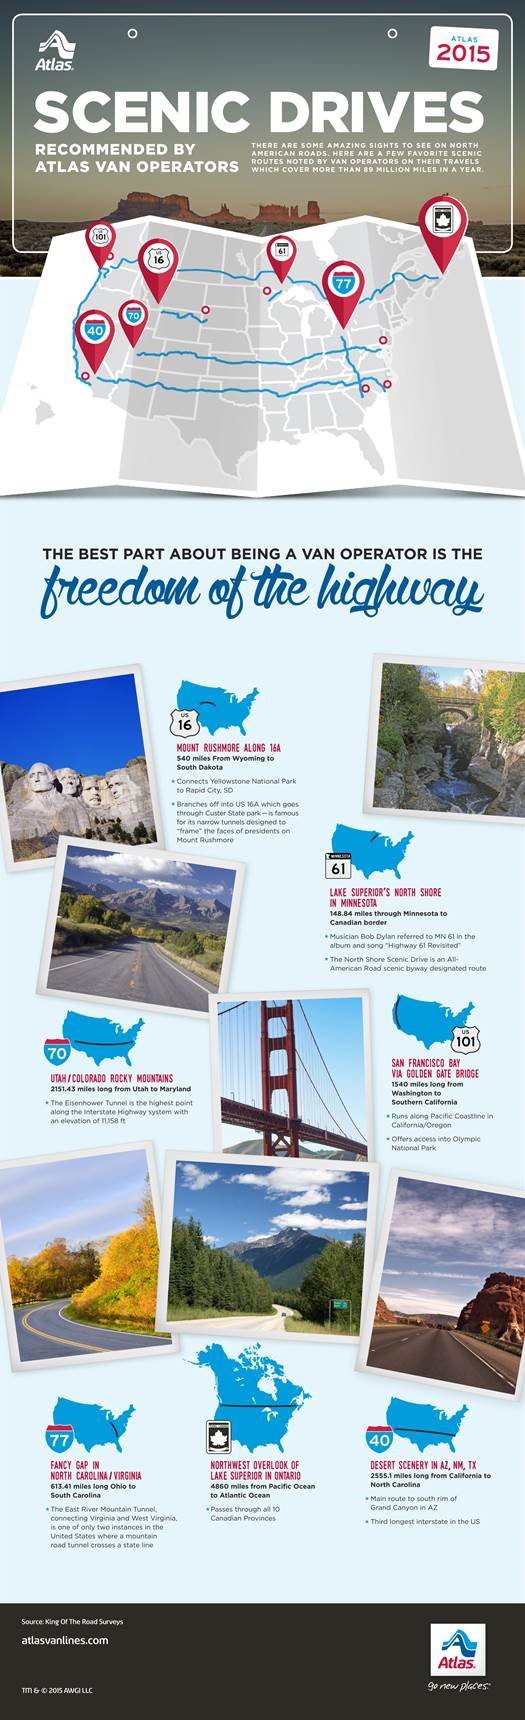 What's your favorite, most-scenic route around the U.S. and Canada?